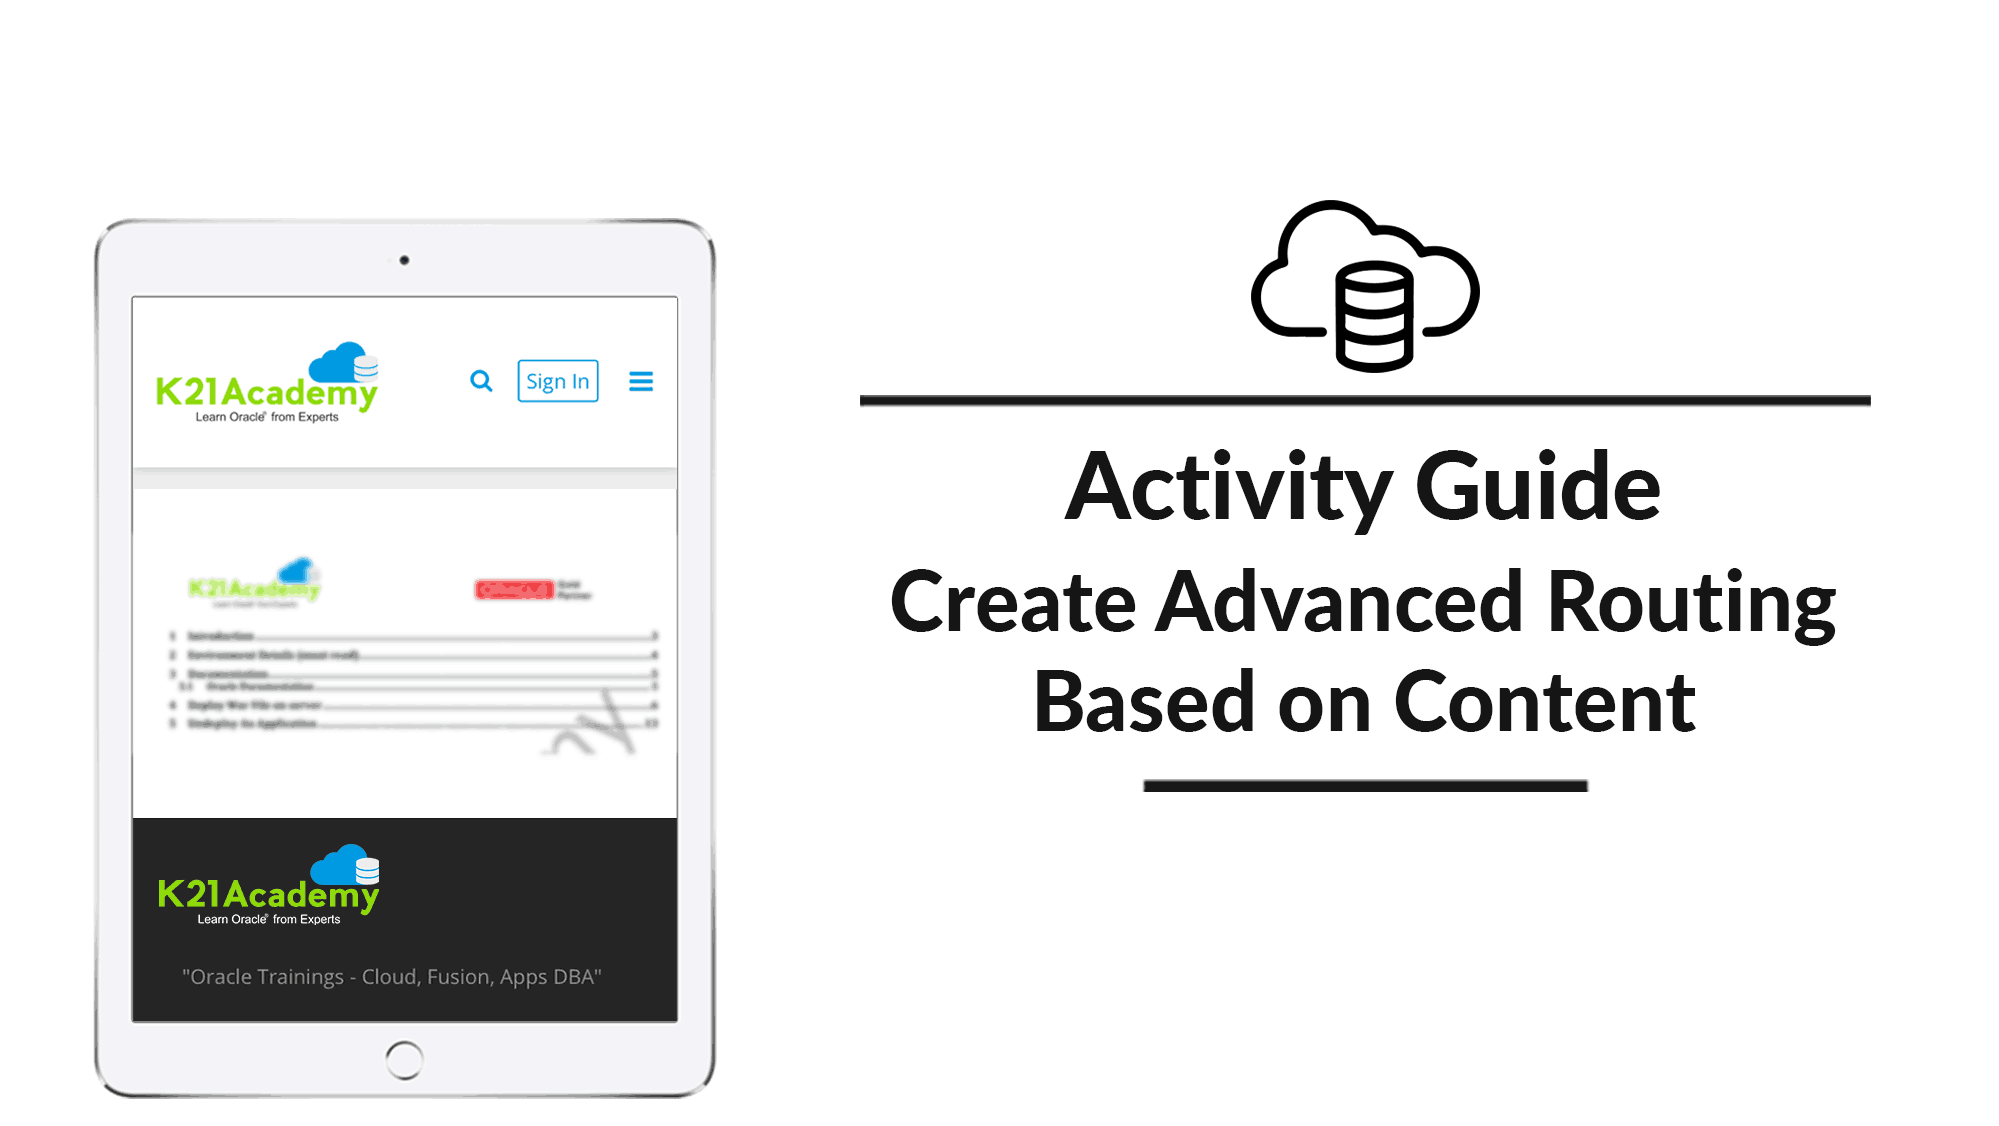 Create Advanced Routing Based On Content